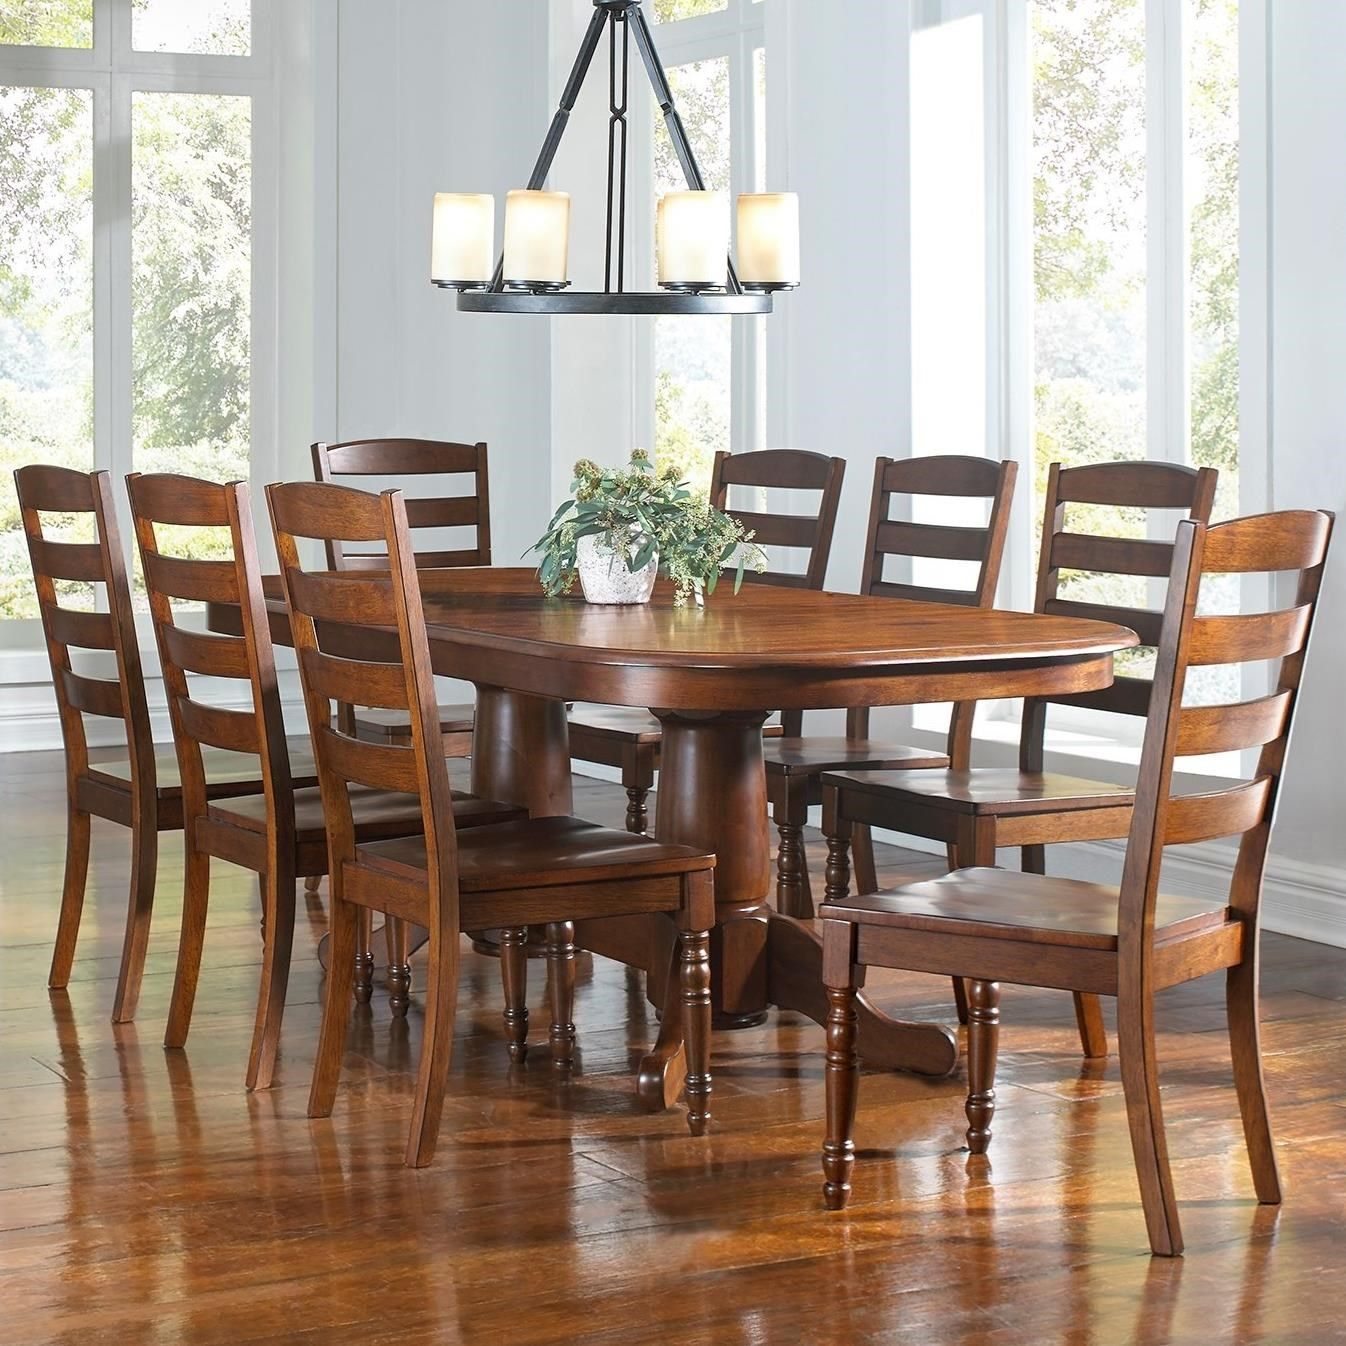 roanoke 9 piece dining set by aamerica home ideas pinterest